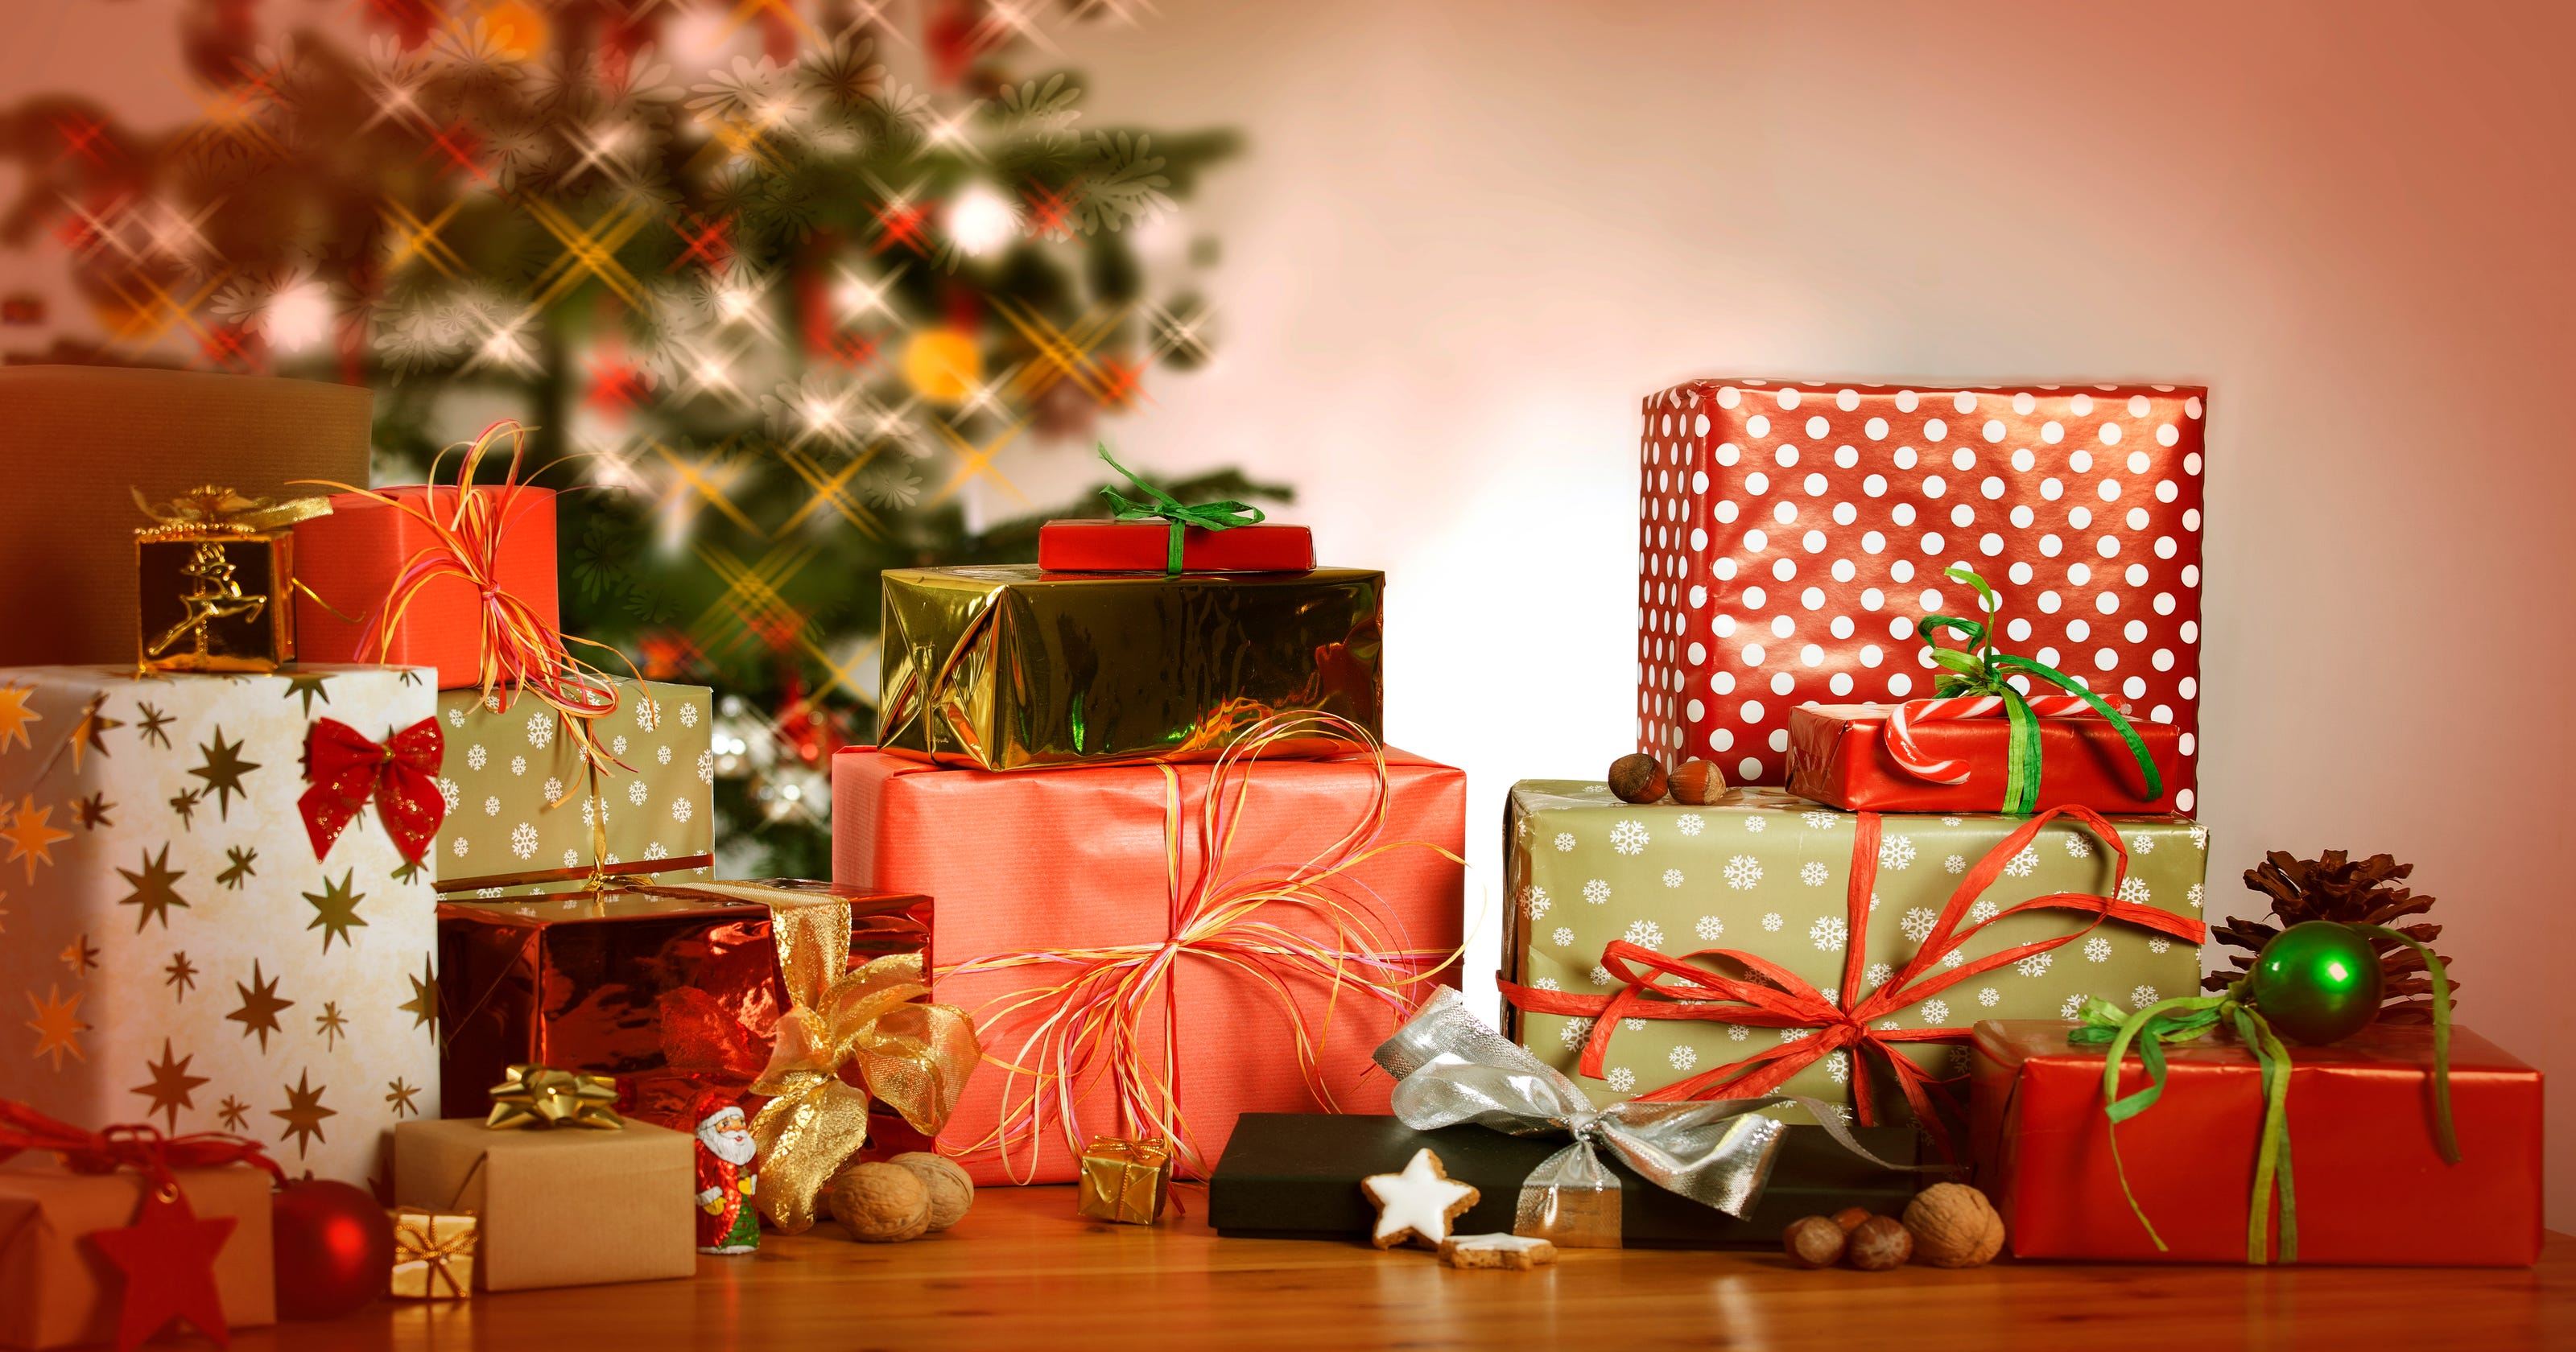 its not exactly gold frankincense and myrrh - Gold Frankincense And Myrrh Christmas Gifts